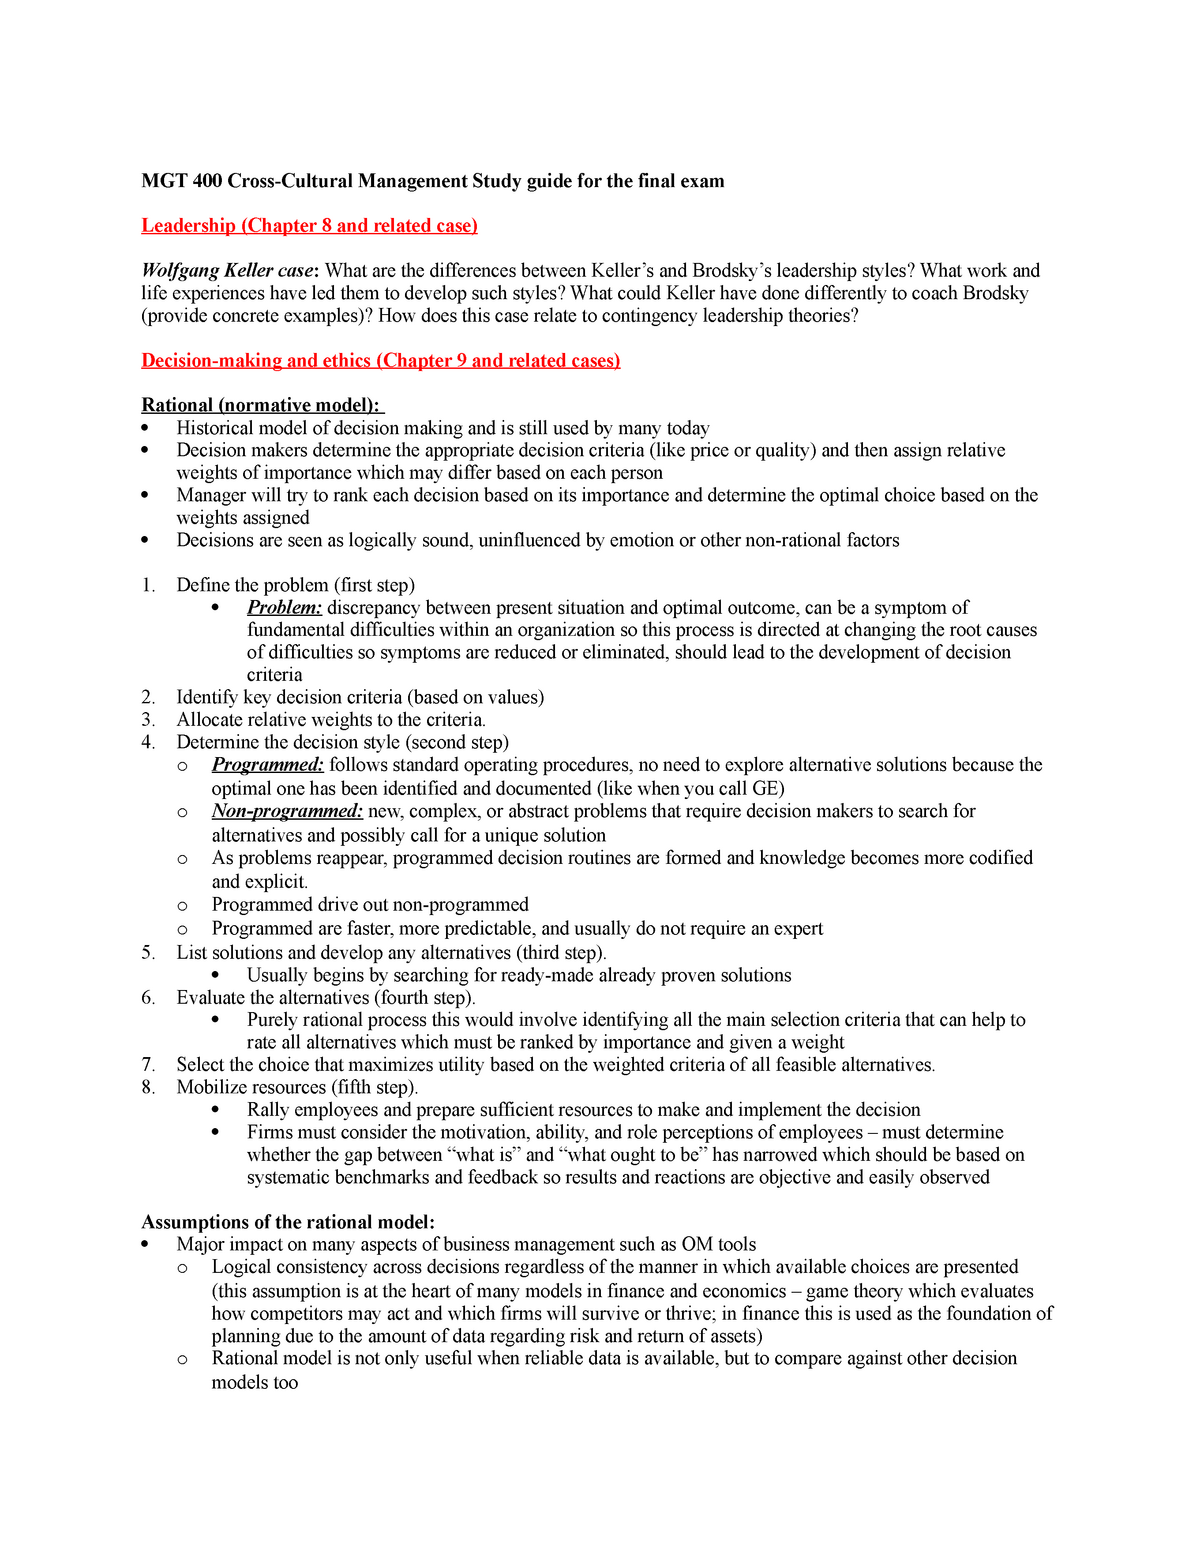 Summary - full study guide for final exam MGT 400 - MGT 400